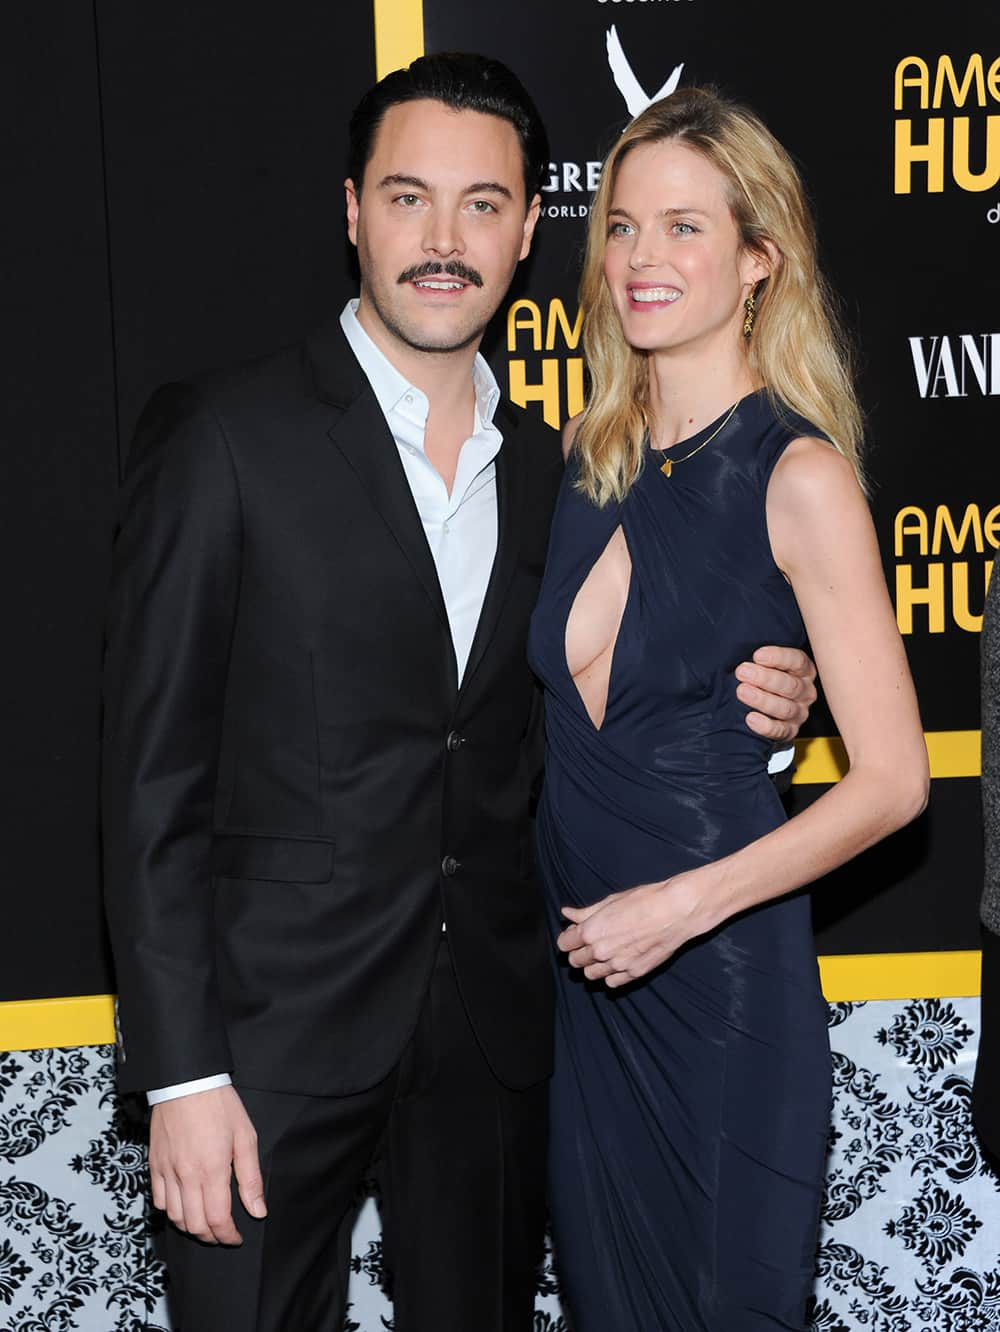 Actor Jack Huston and girlfriend model Shannan Click attend the premiere of